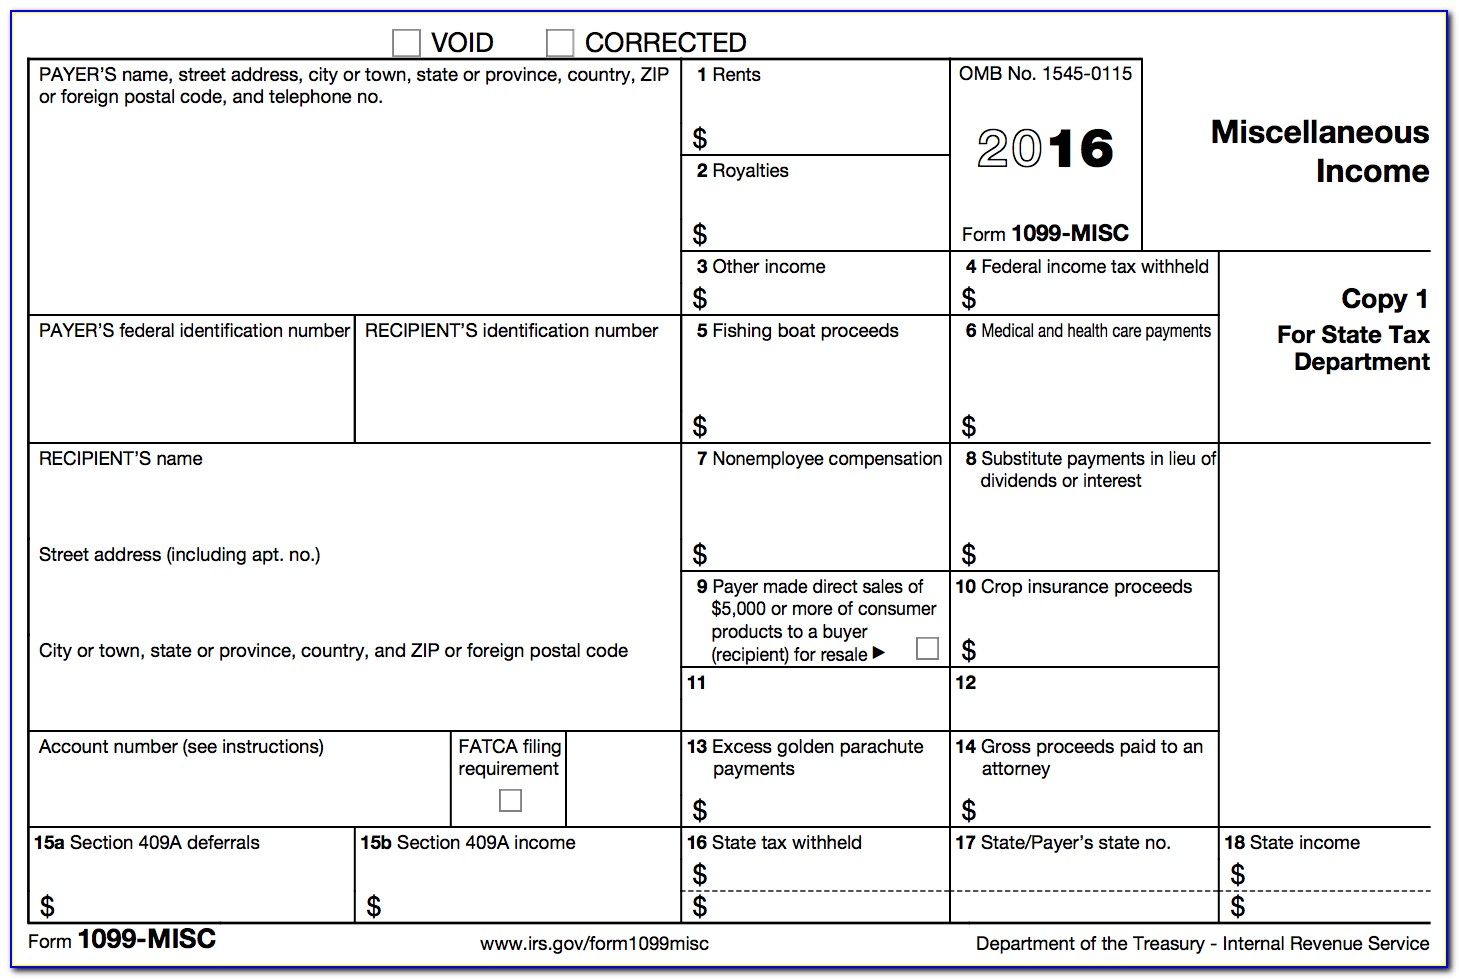 Tax Form 1099 Misc Instructions